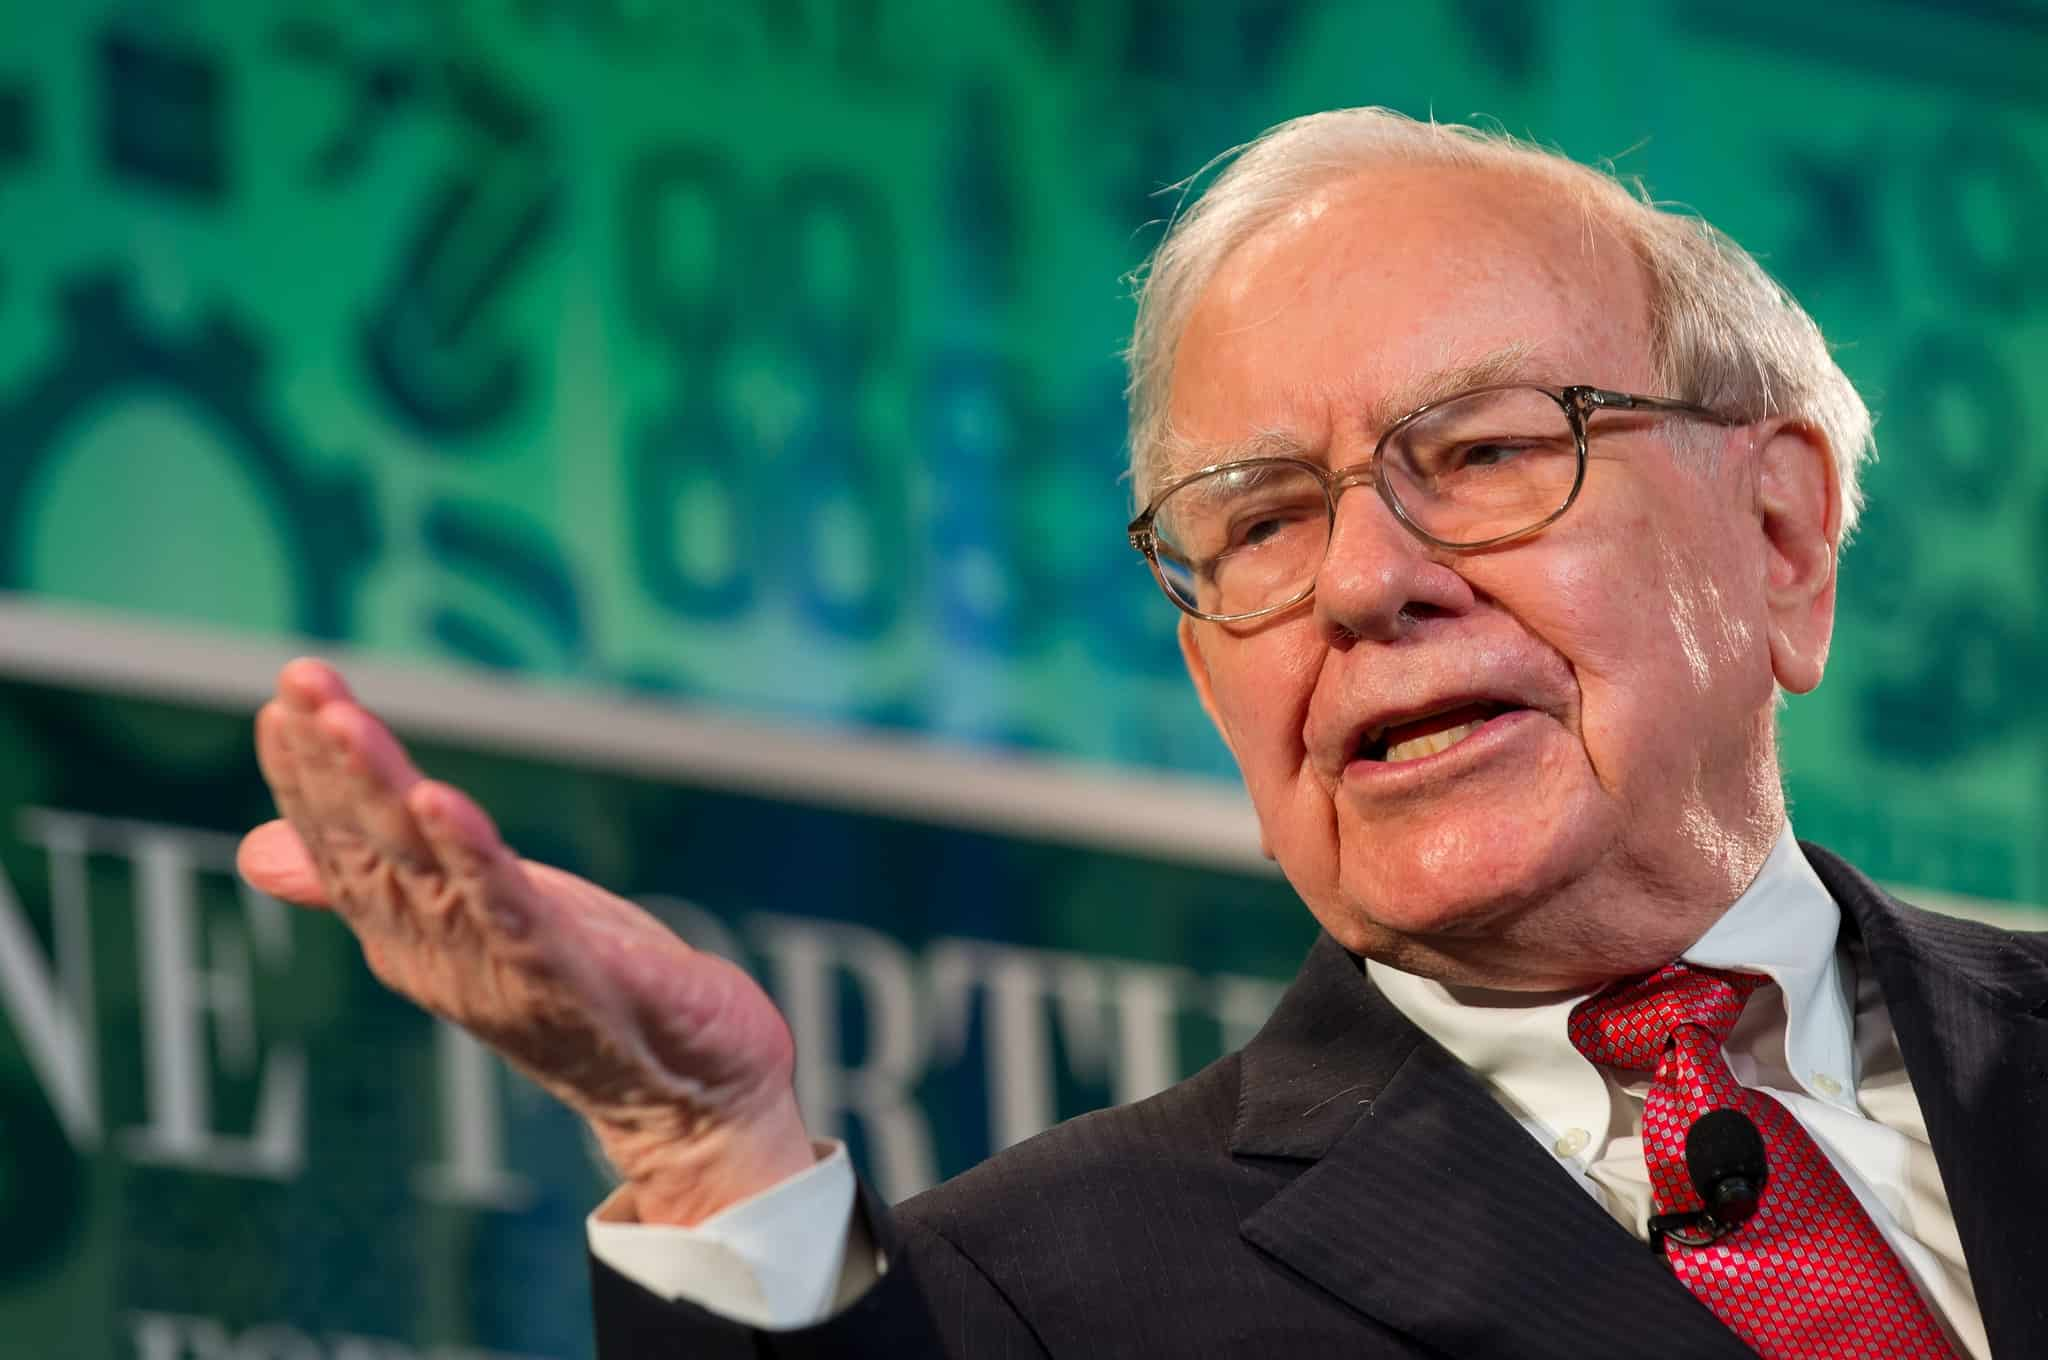 How Warren Buffett's 20-Slot rule can make you wealthy